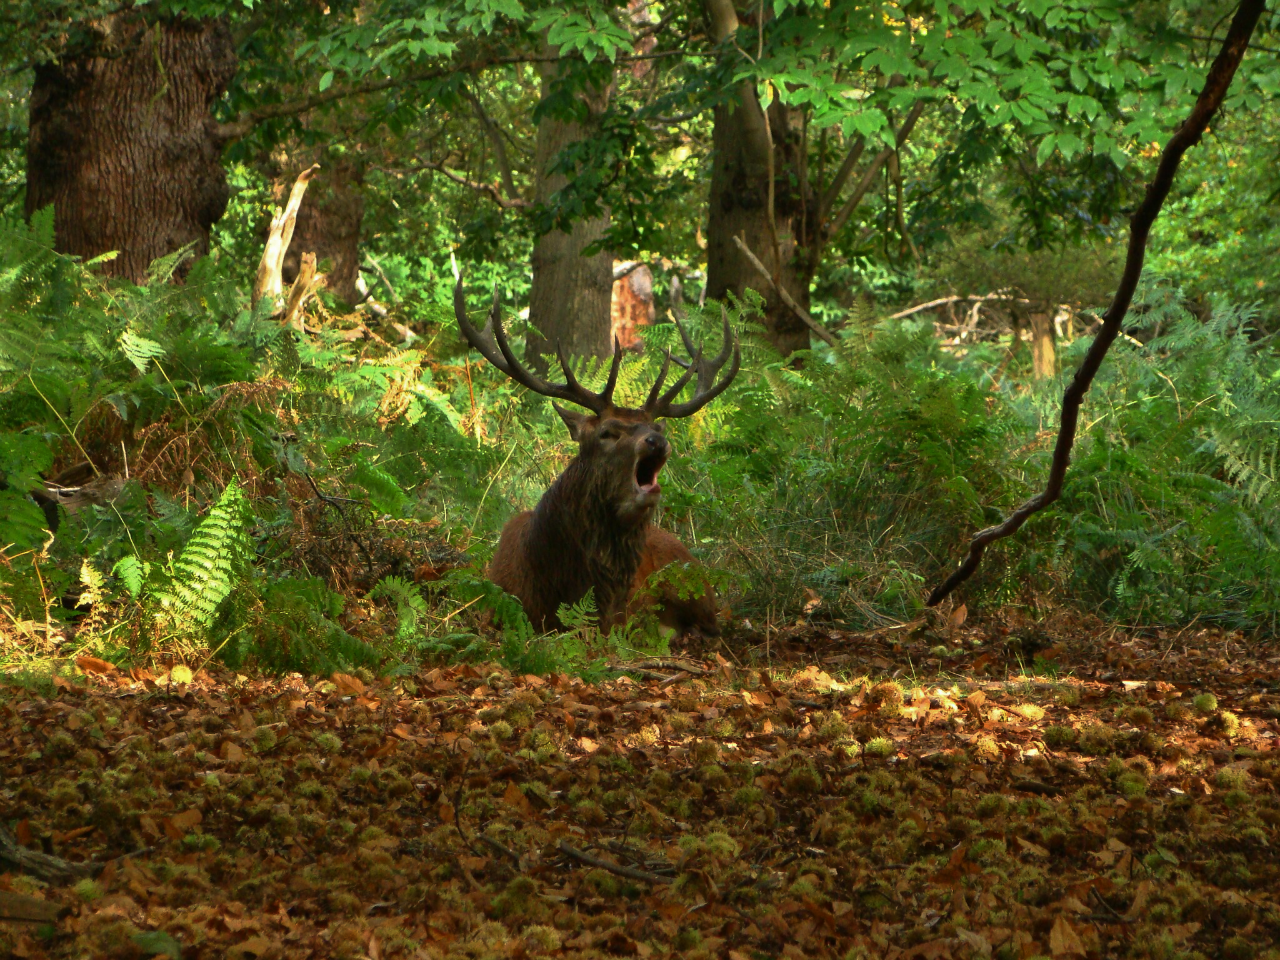 A red deer stag roaring in Richmond Park (5 October 2014)